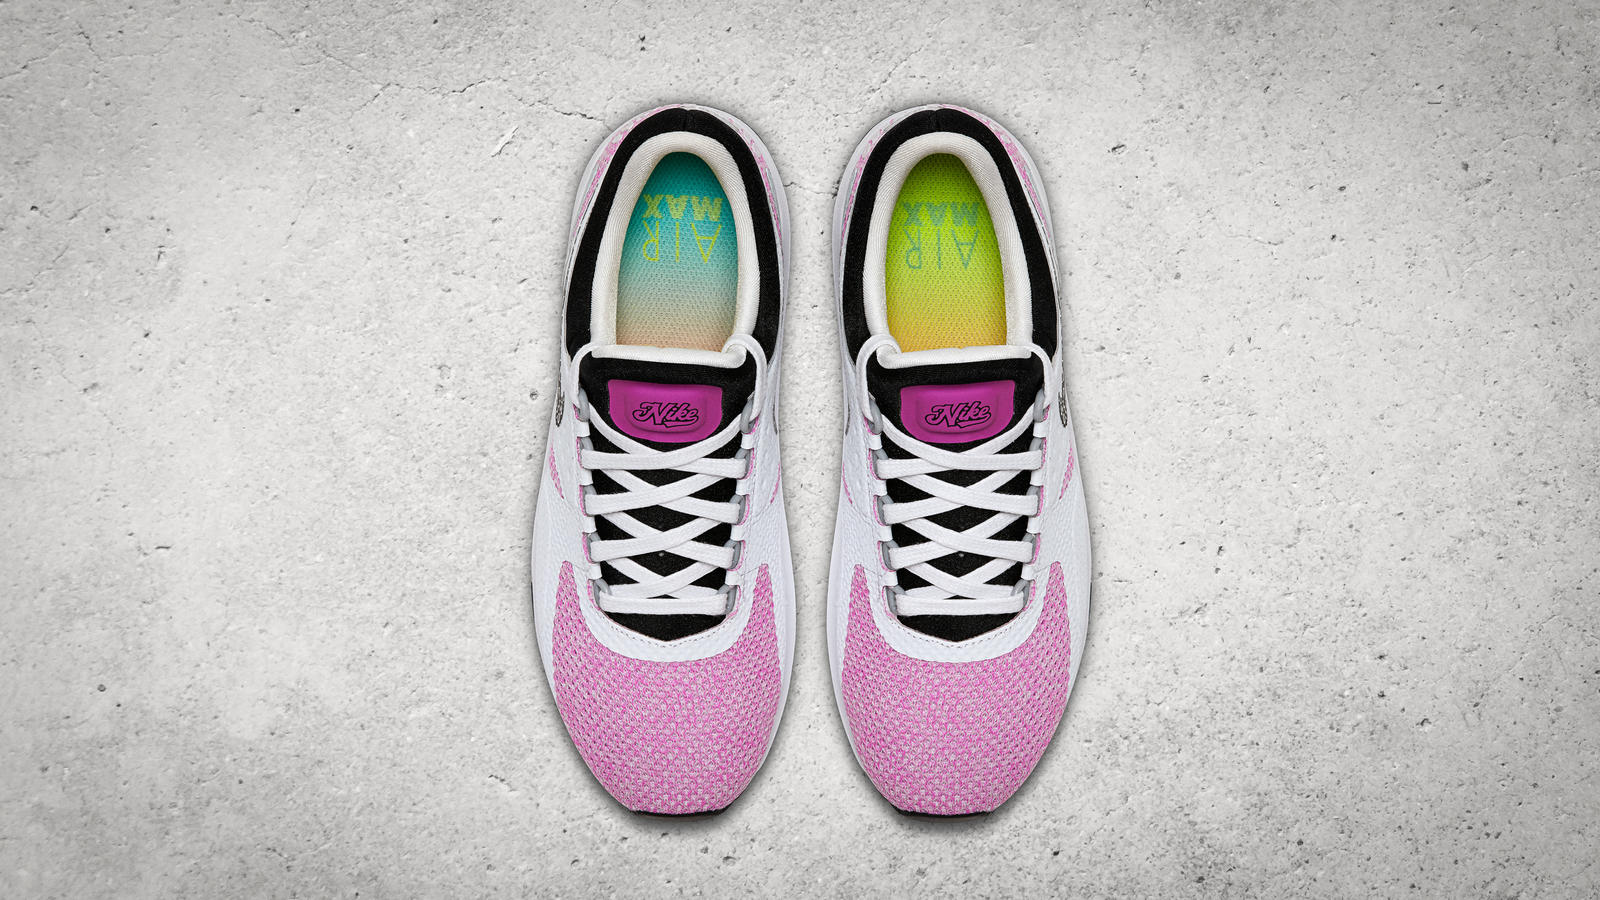 d7510e90b6 Mademoiselle Gloria's Nike Air Max Zero is available January 20 in grade  school sizes on nike.com in Europe.